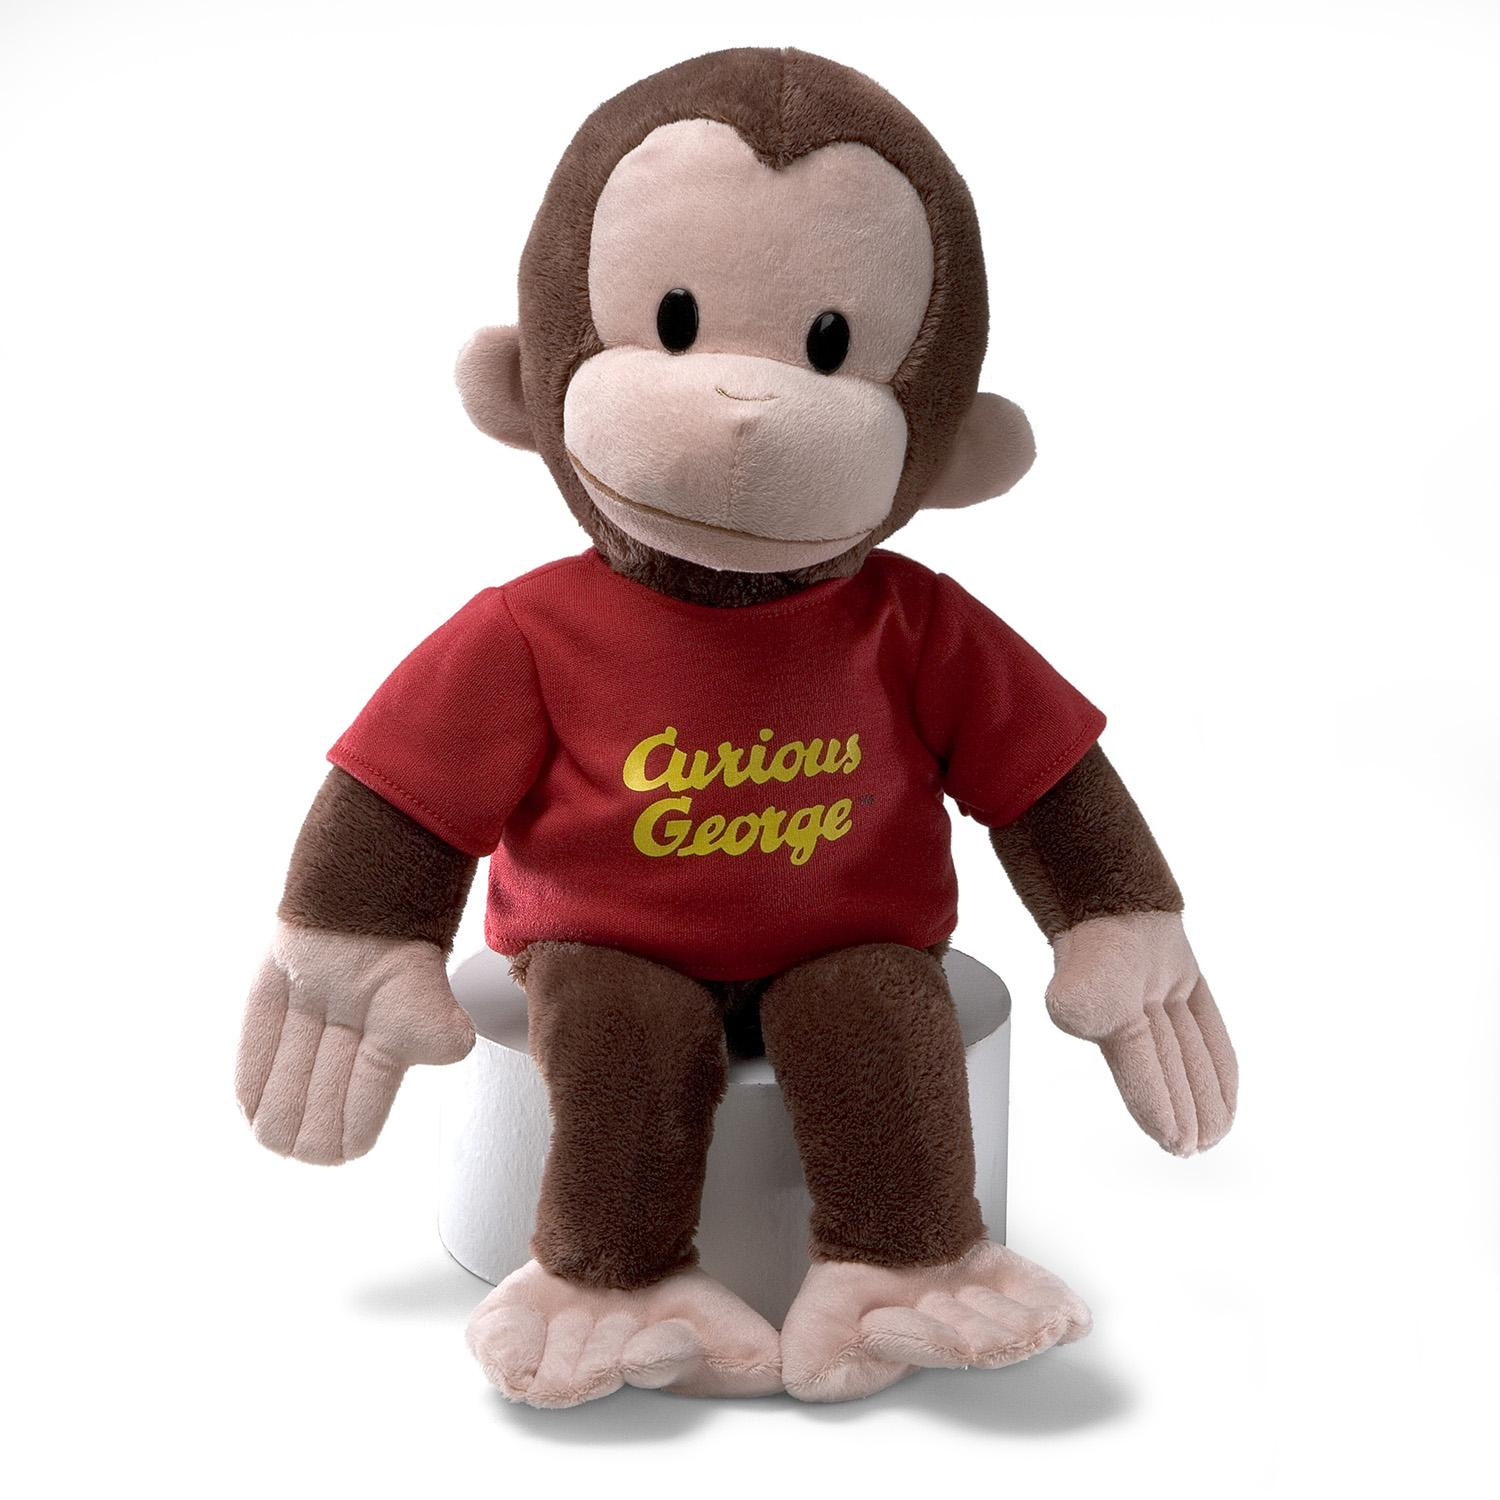 Curious George Plush 16in Red (Other) by Gund